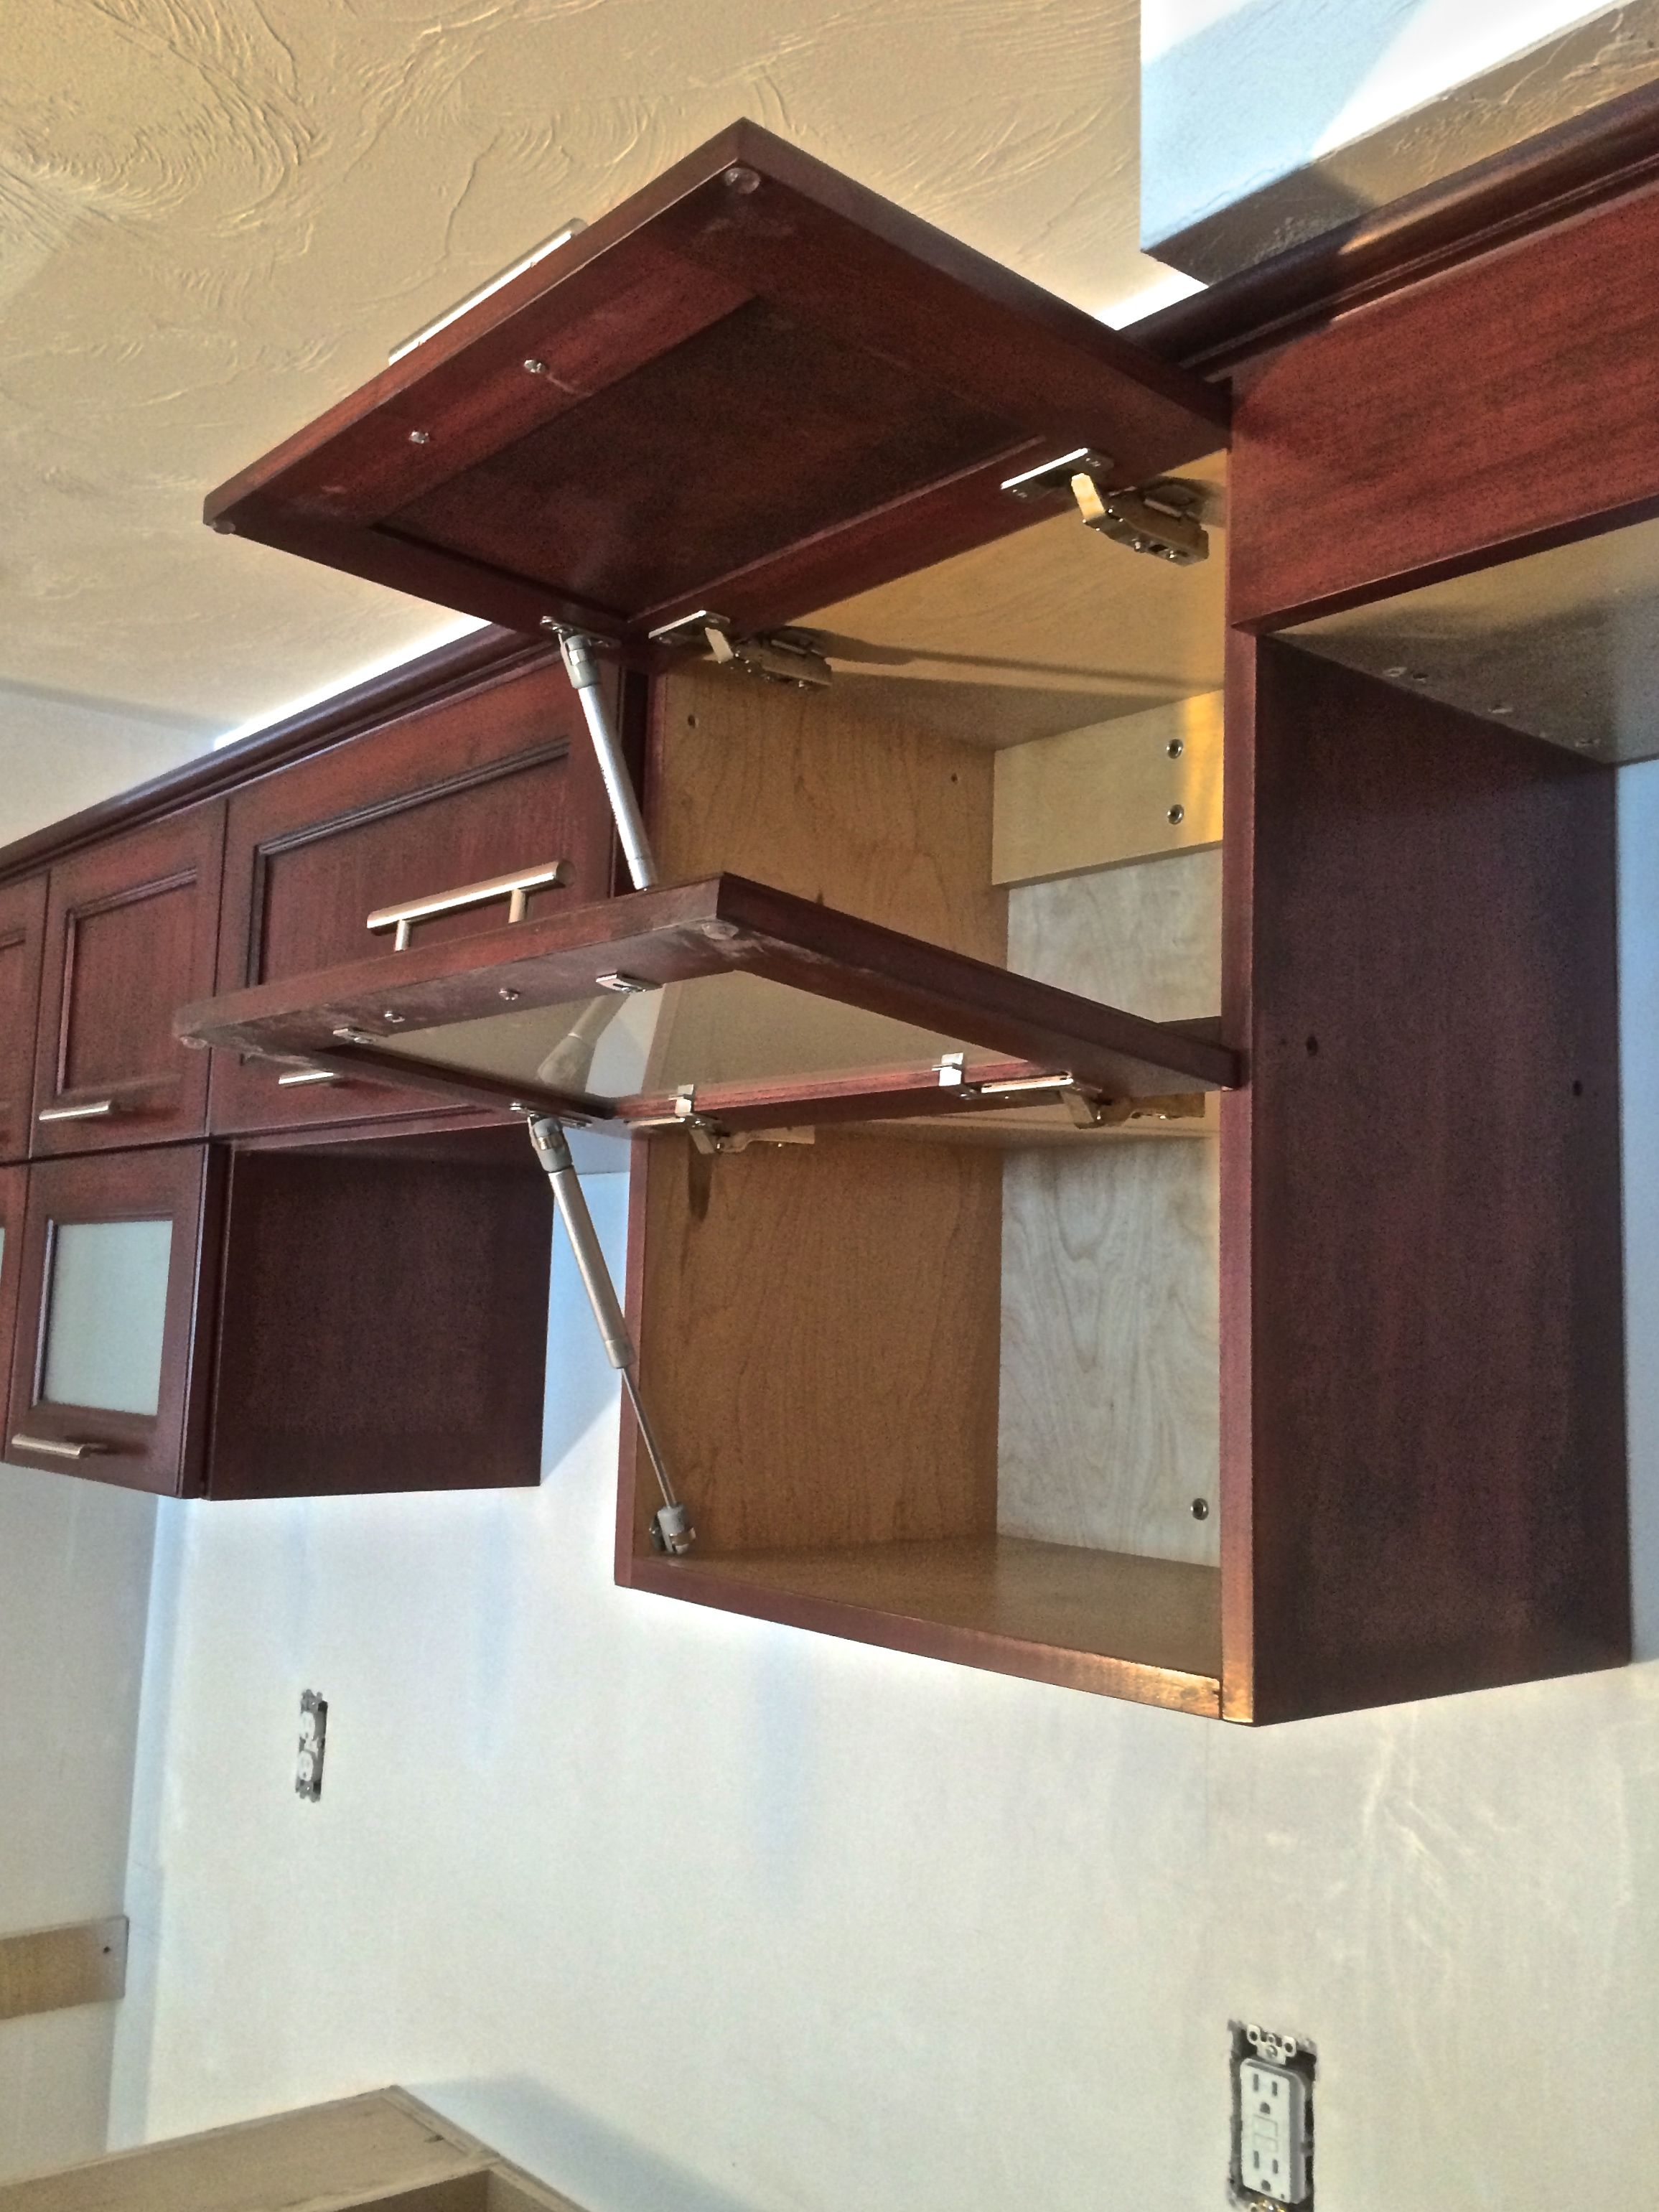 Basement In Law Kitchen Flip Up Doors On Maple Cabinets With A Rich Mahogany Stain Frosted Glass Com Quality Custom Cabinetry Custom Cabinetry Maple Cabinets